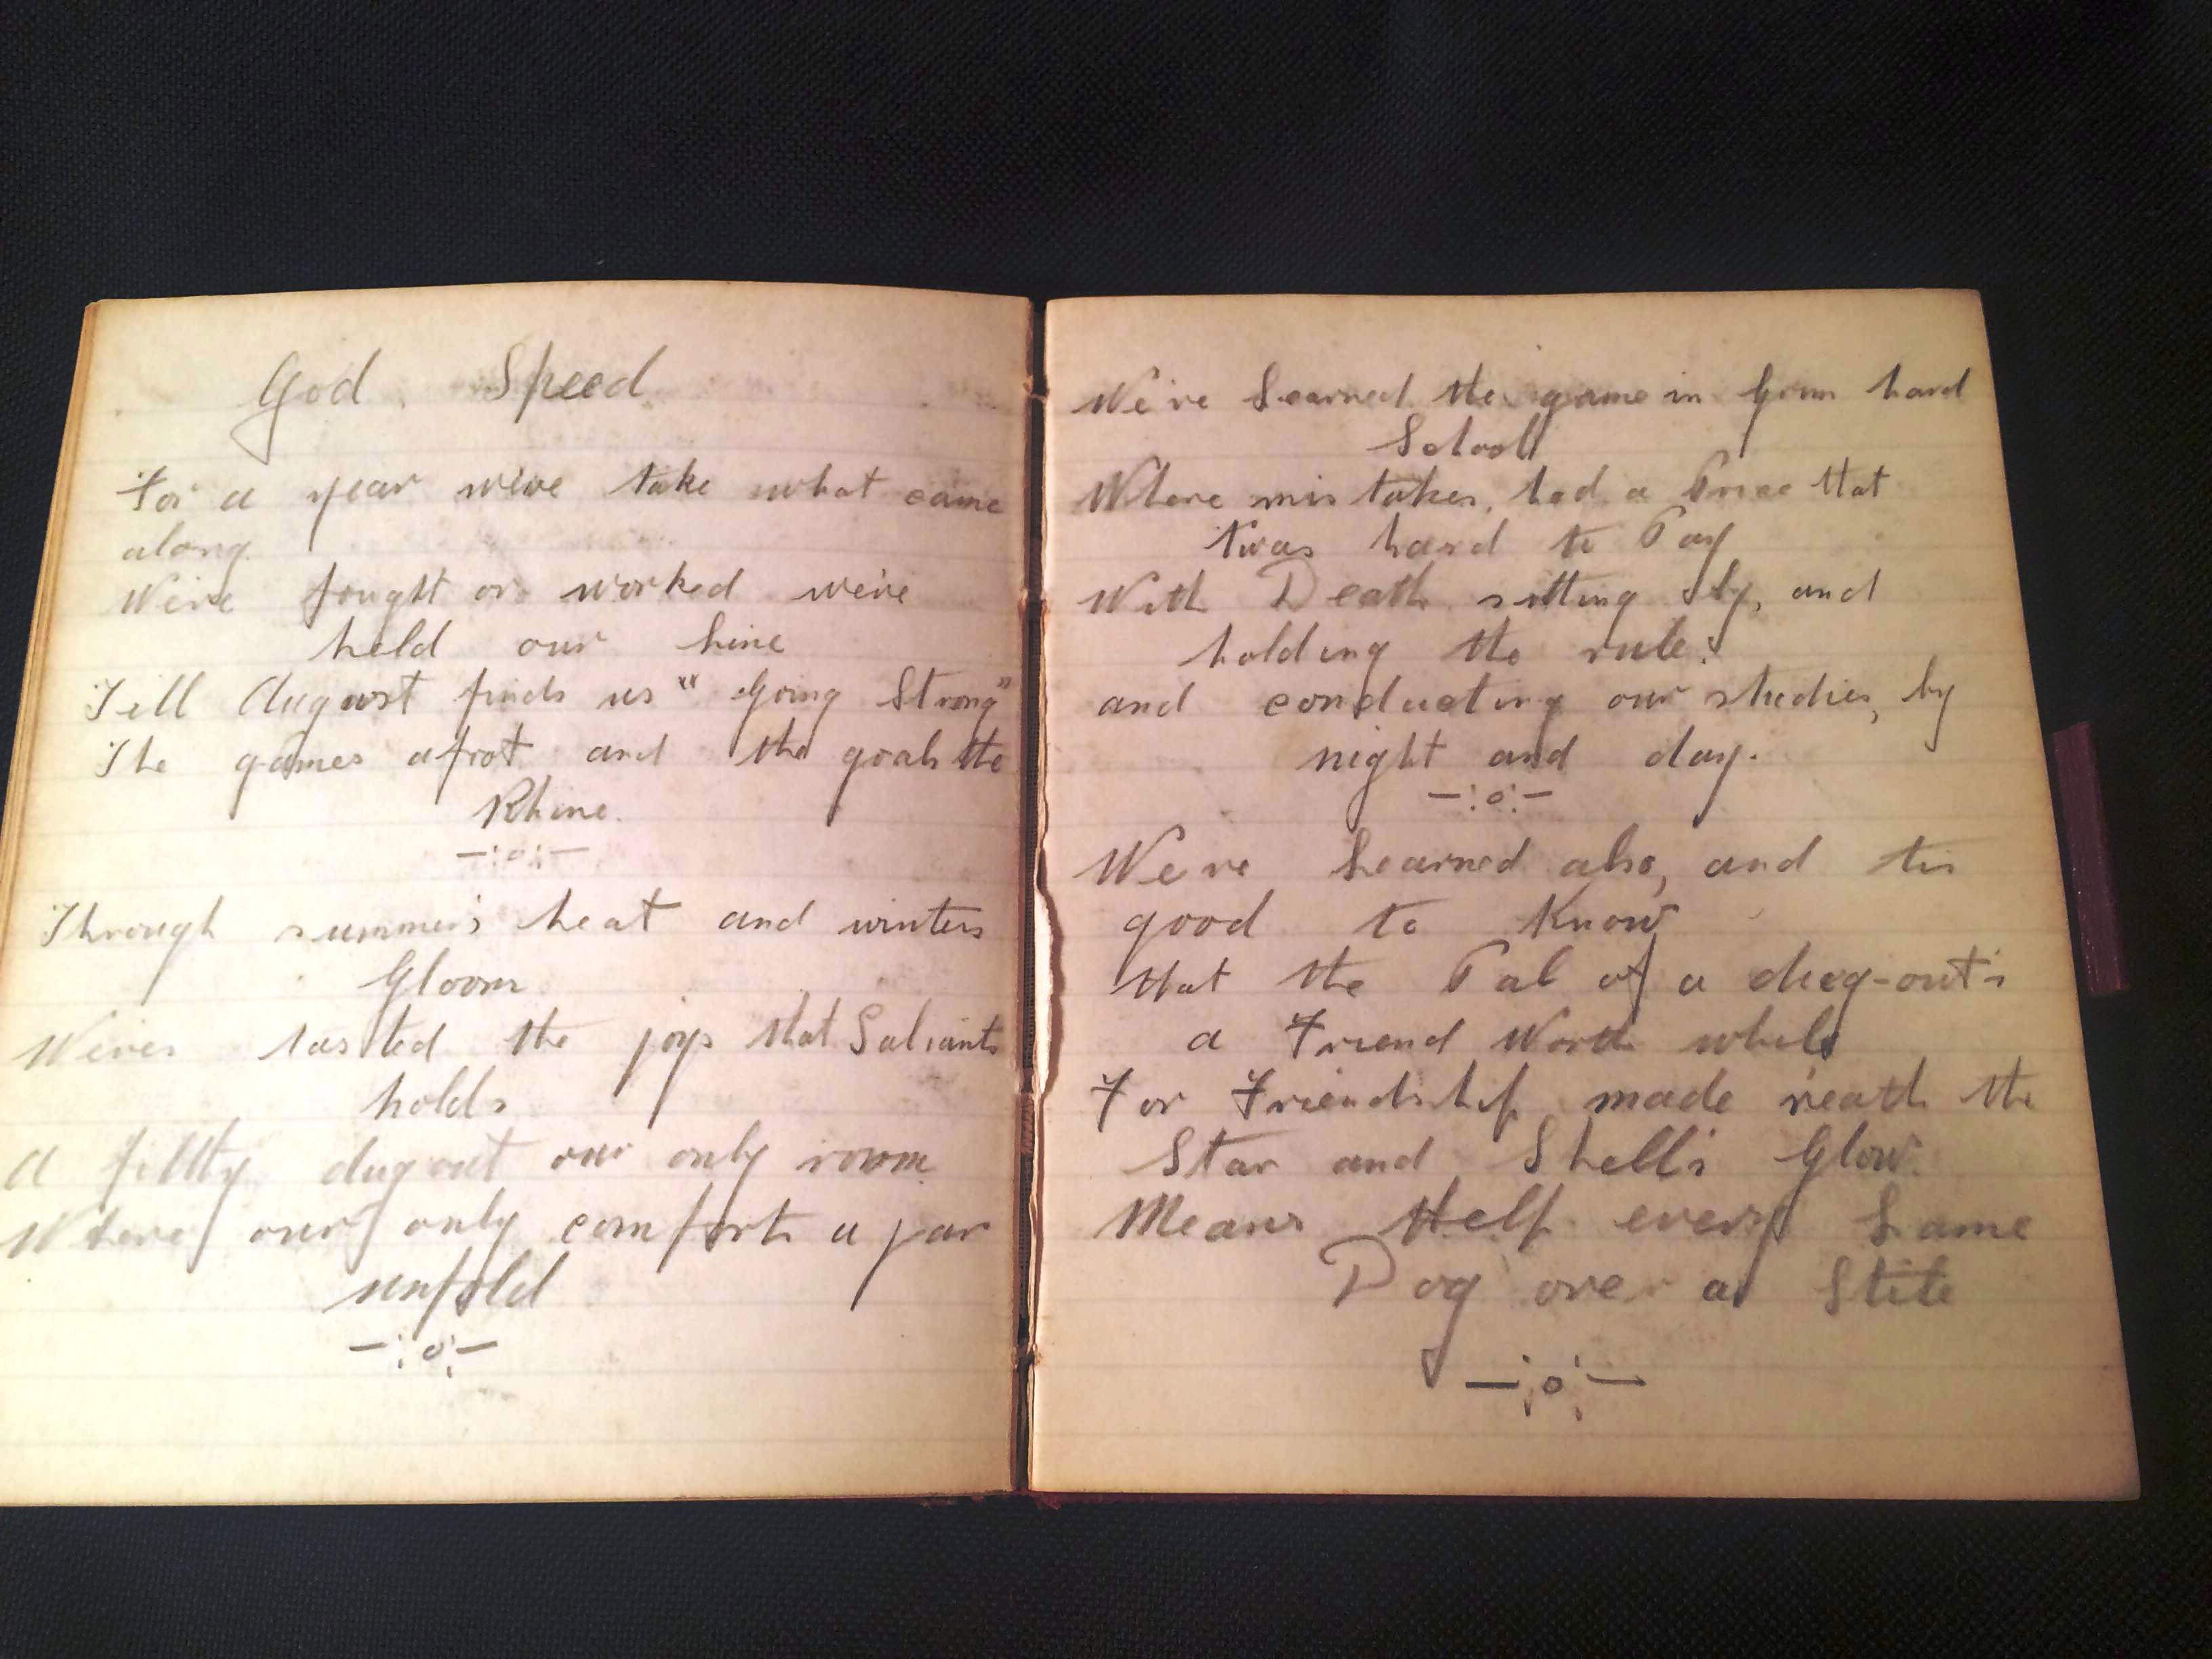 WWI items from soldiers at the hospital-autograph album signed by solders at the hospital